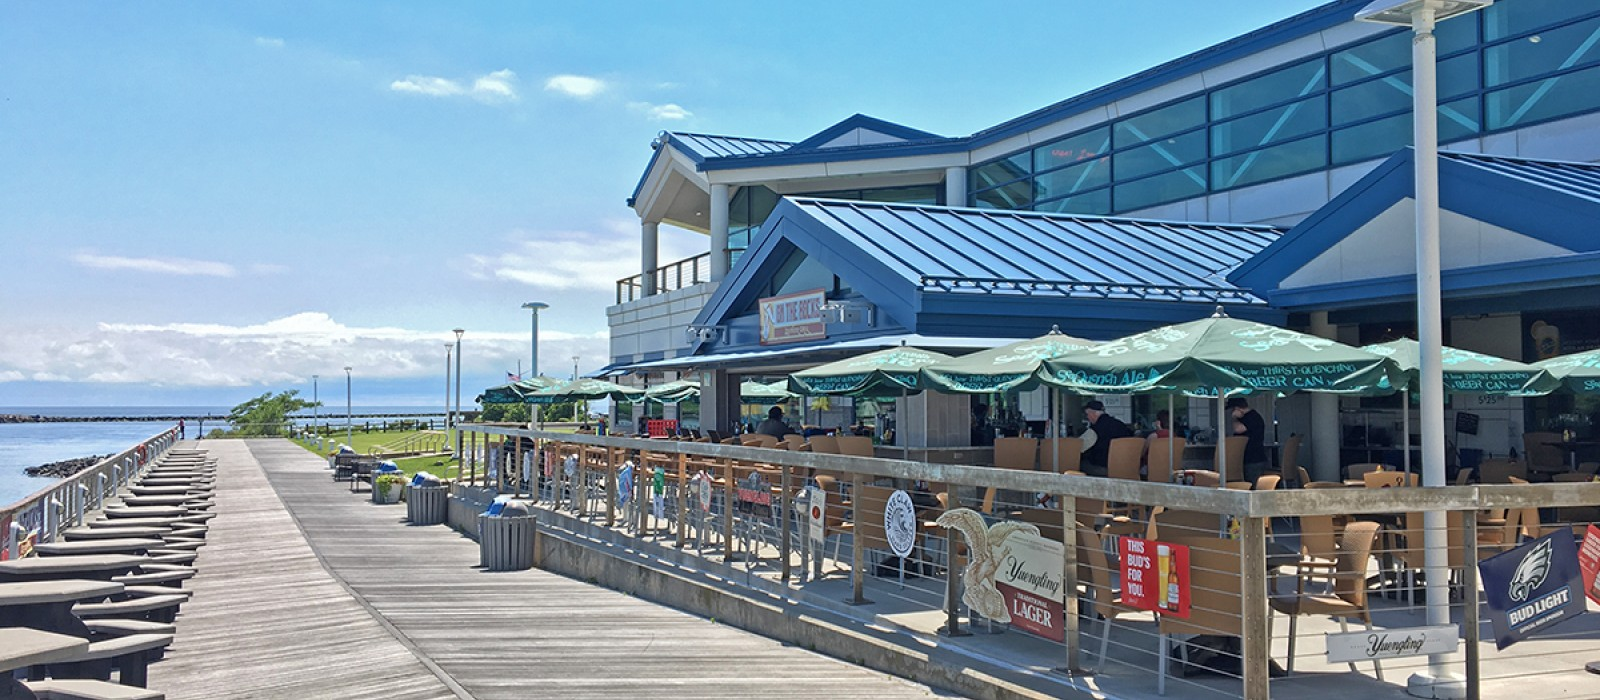 the boardwalk at the Cape May terminal provides a great place to get fresh air and some exercise